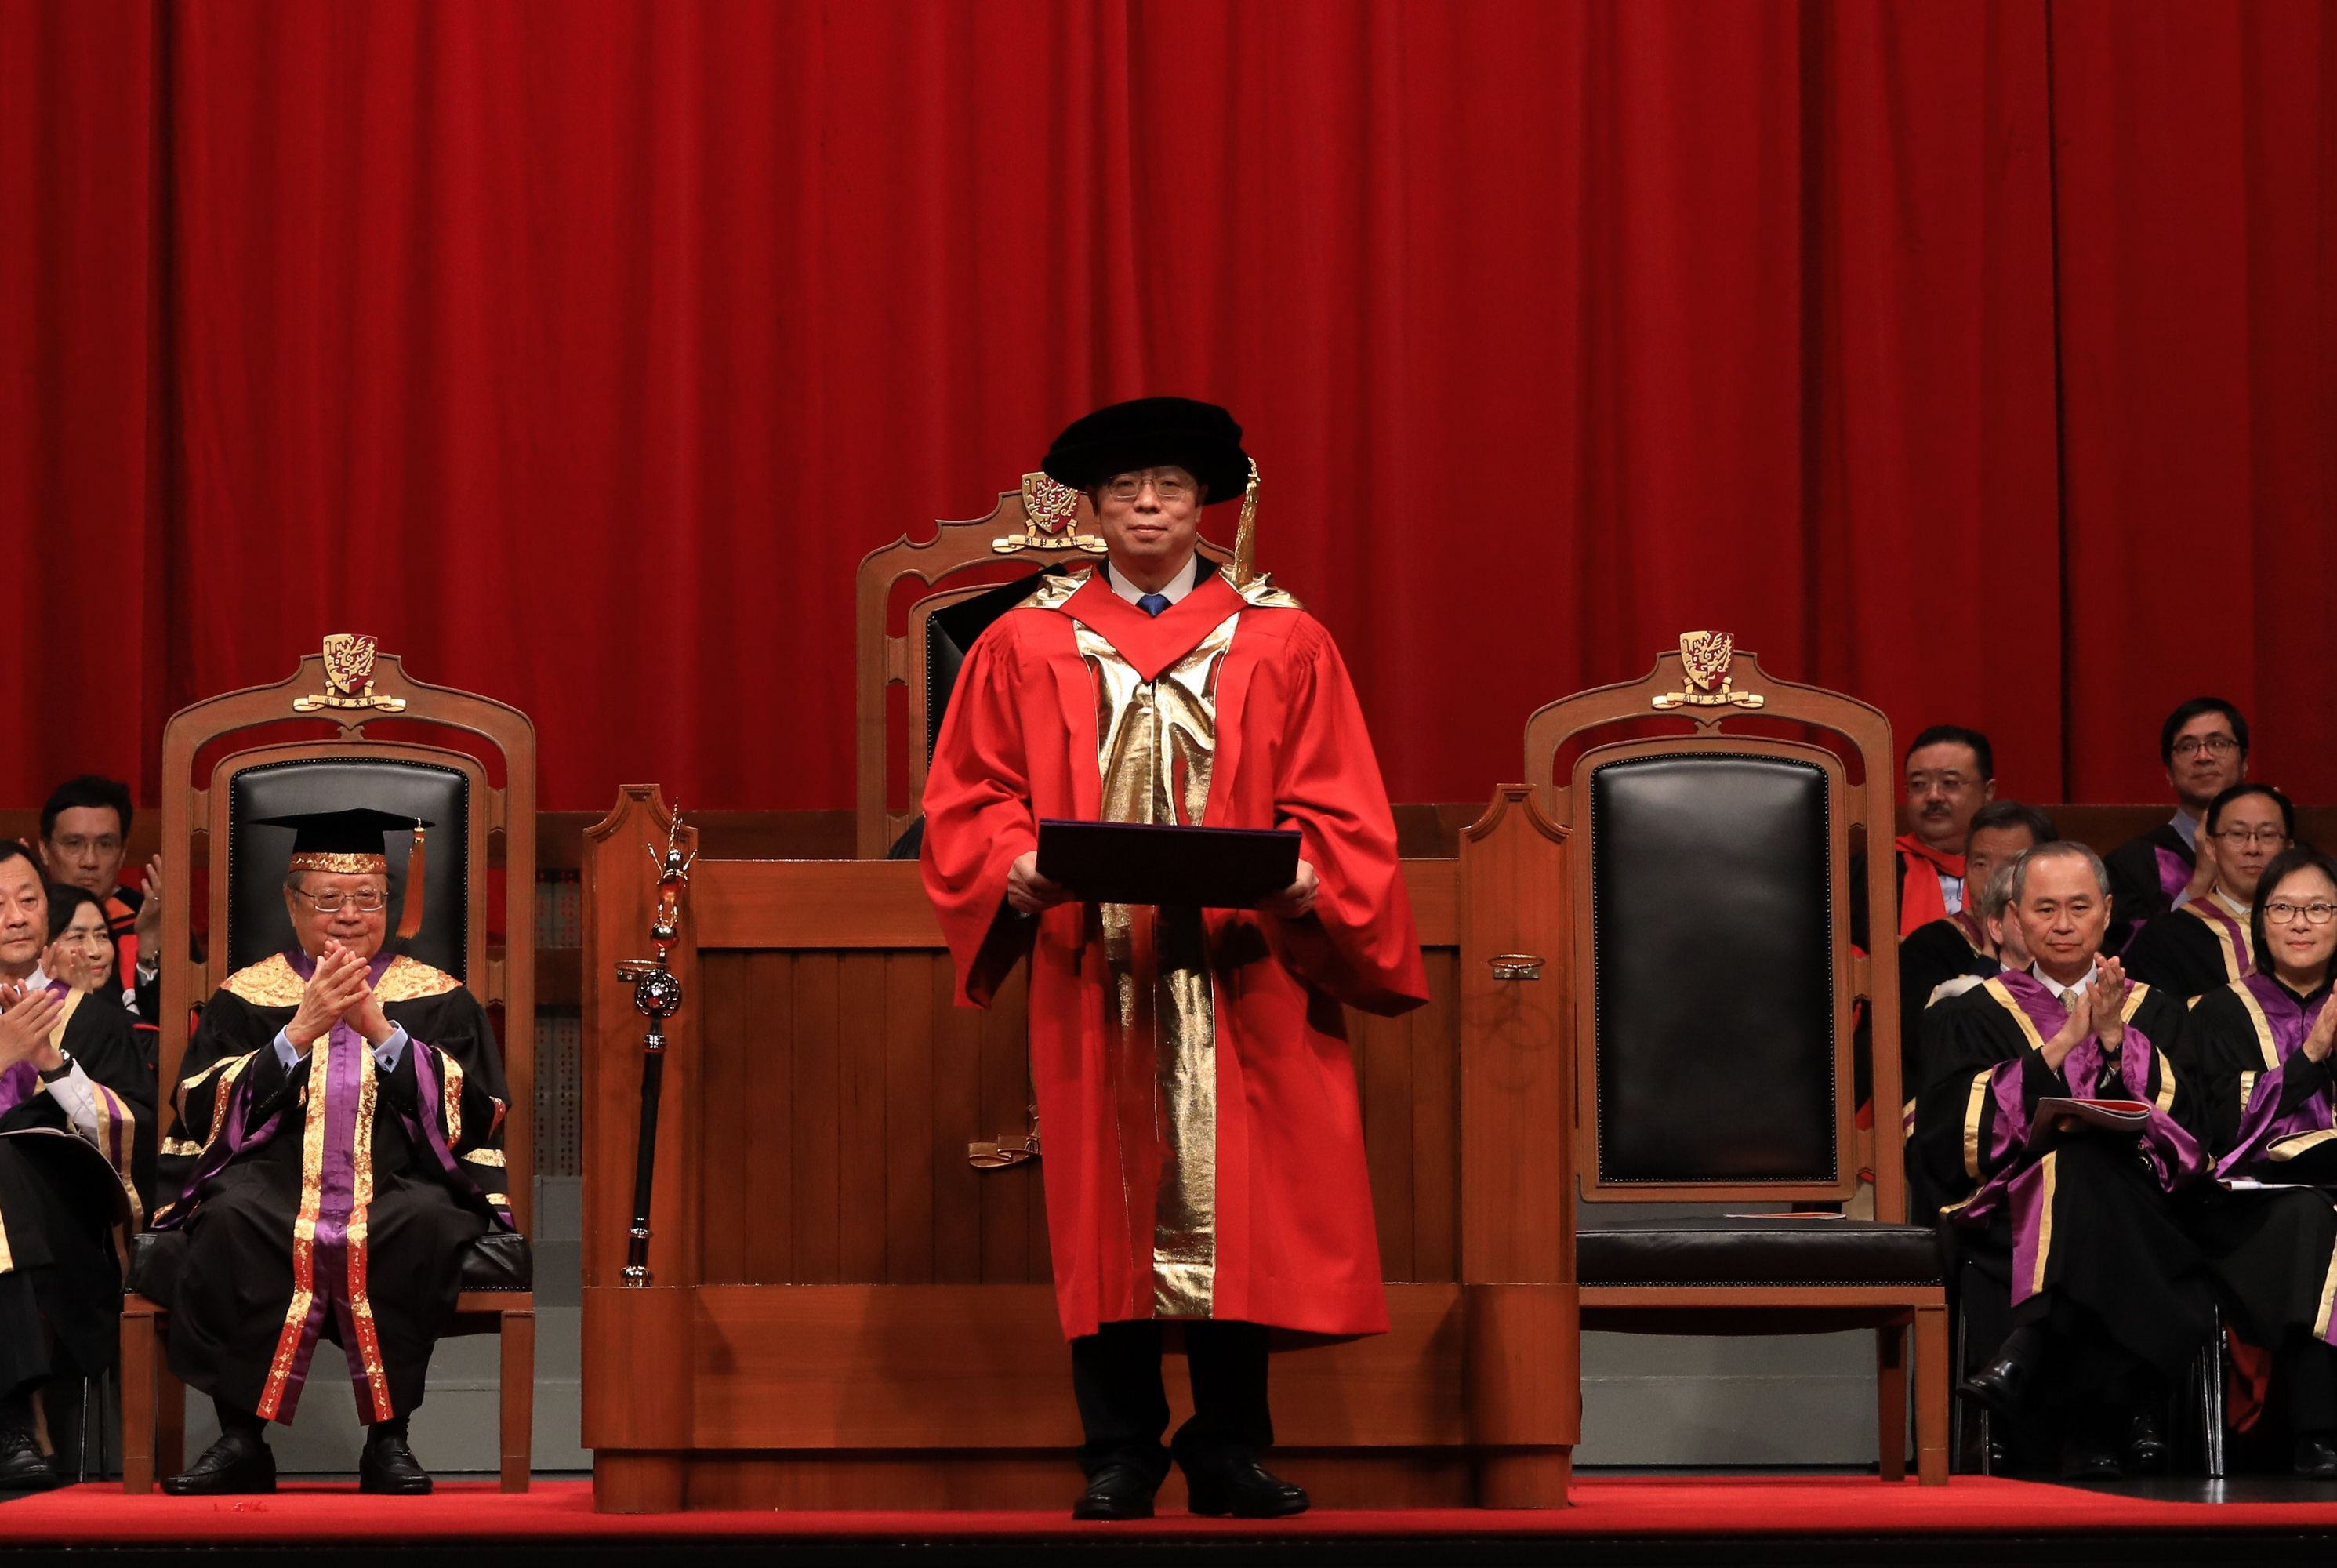 Professor Qiu Yong receives the degree of Doctor of Science, honoris causa